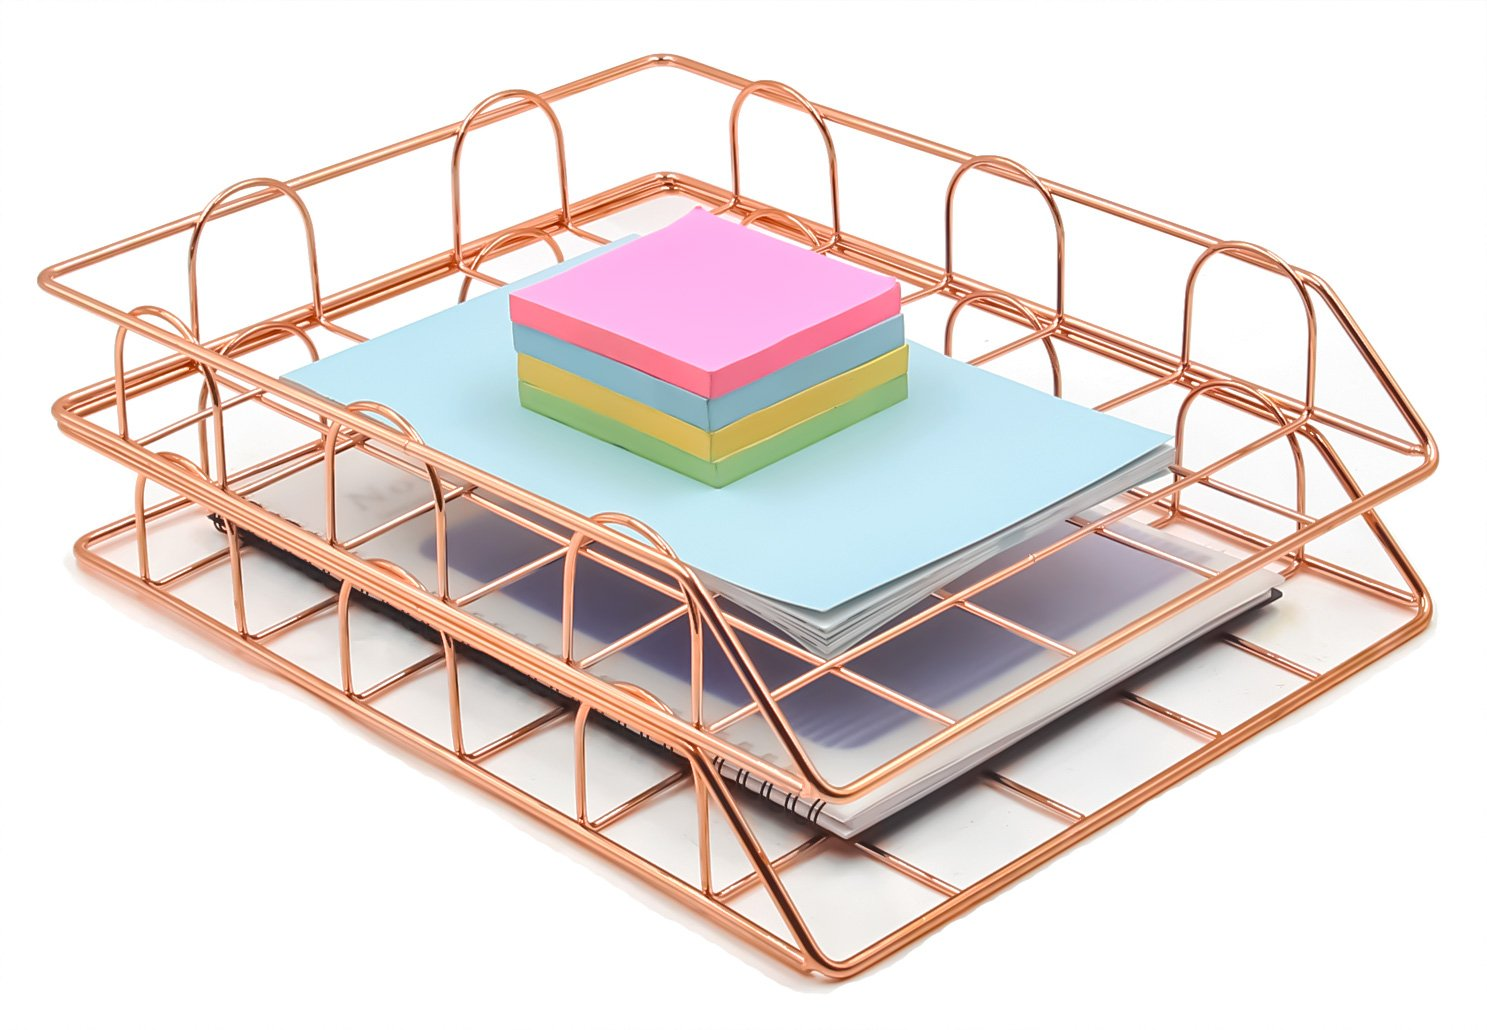 Superbpag Set of 2 Office Supplies Metal Stackable File Document Letter Tray Organizer, Rose Gold